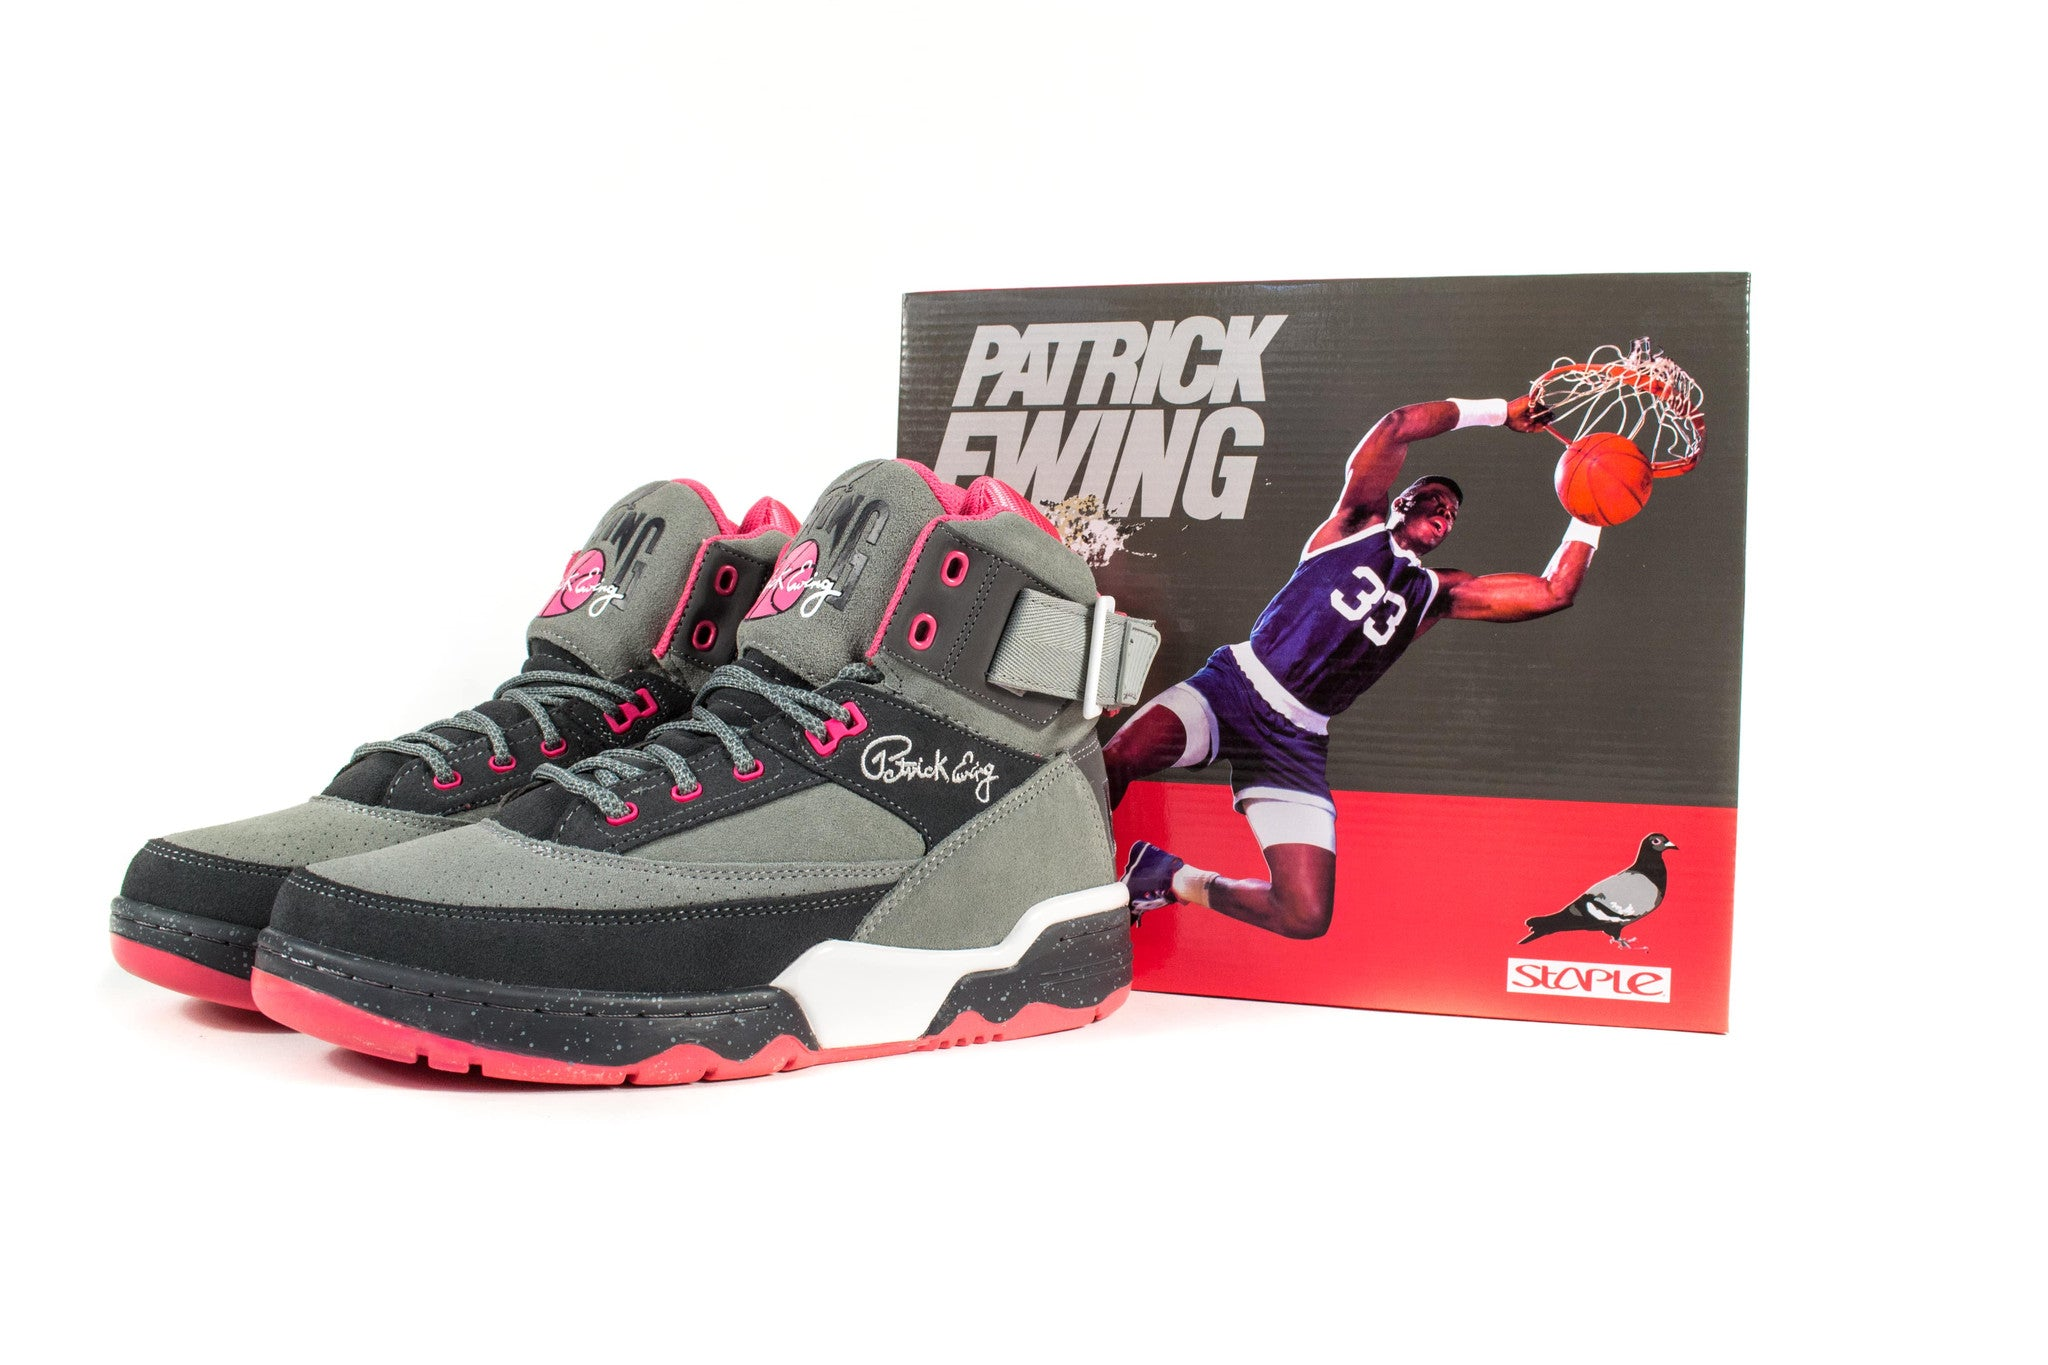 wholesale dealer f9bf5 3394d Staple x Ewing Athletics 33 Hi - Shoes   Staple Pigeon